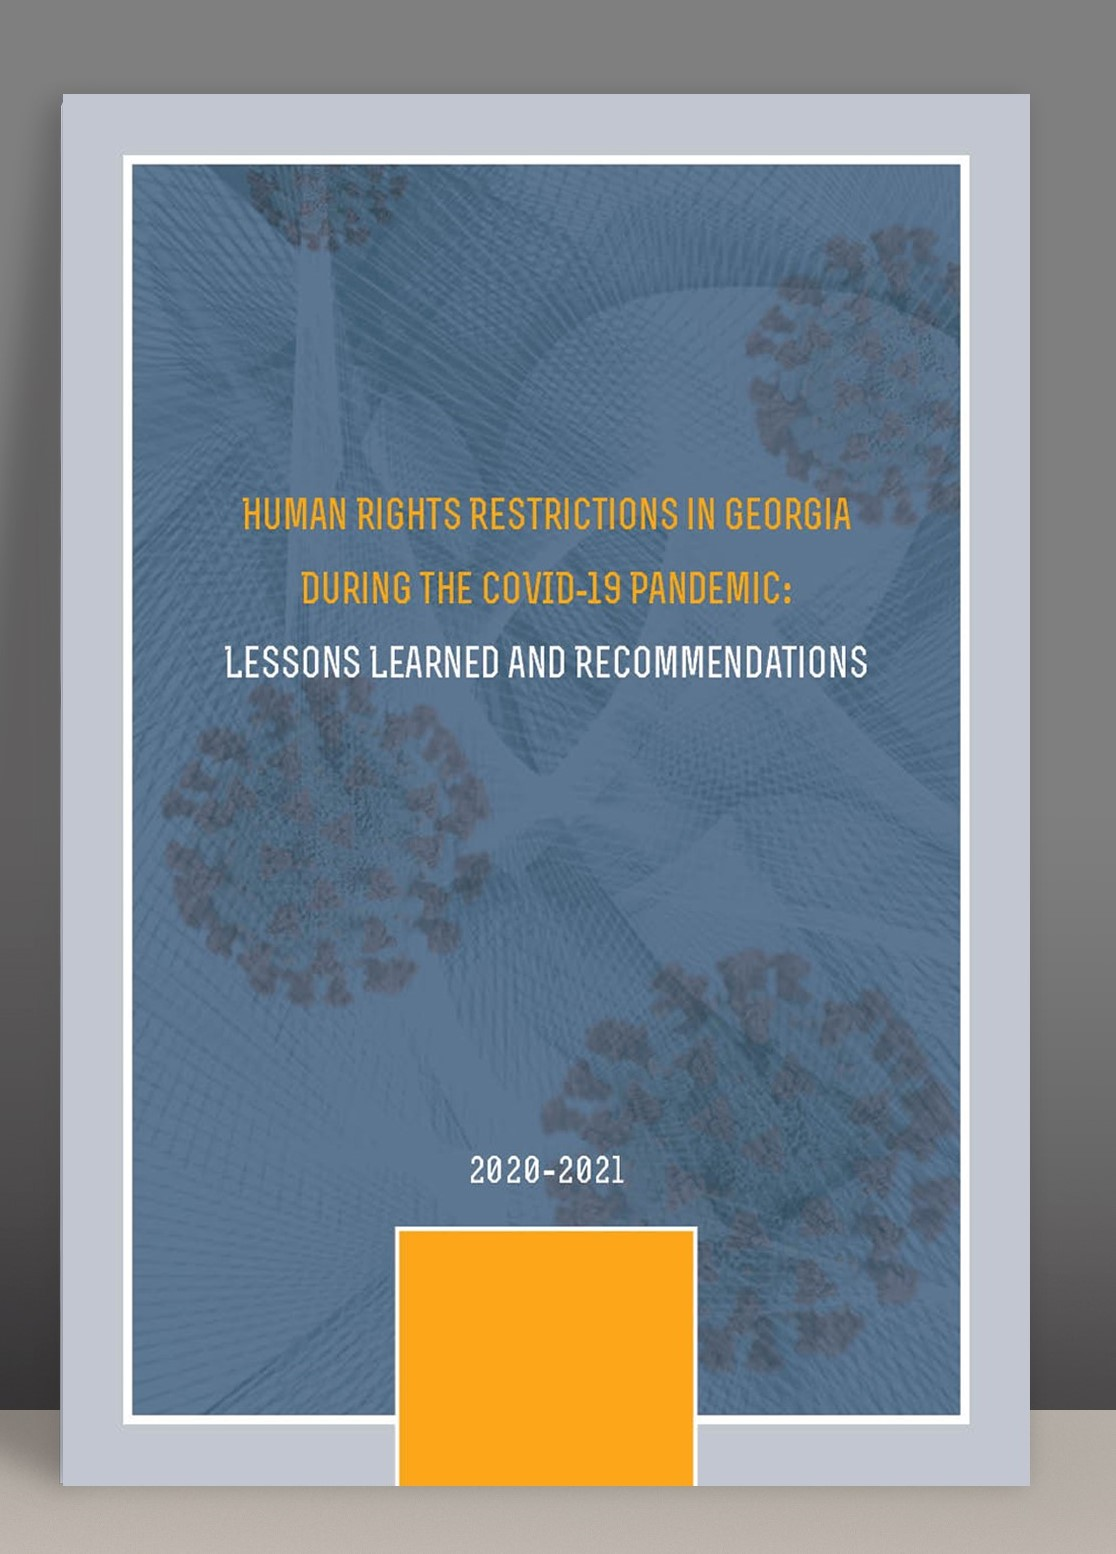 Human Rights Restriction in Georgia During Covid 19 Pandemic – Lessons Learned and Recommendations